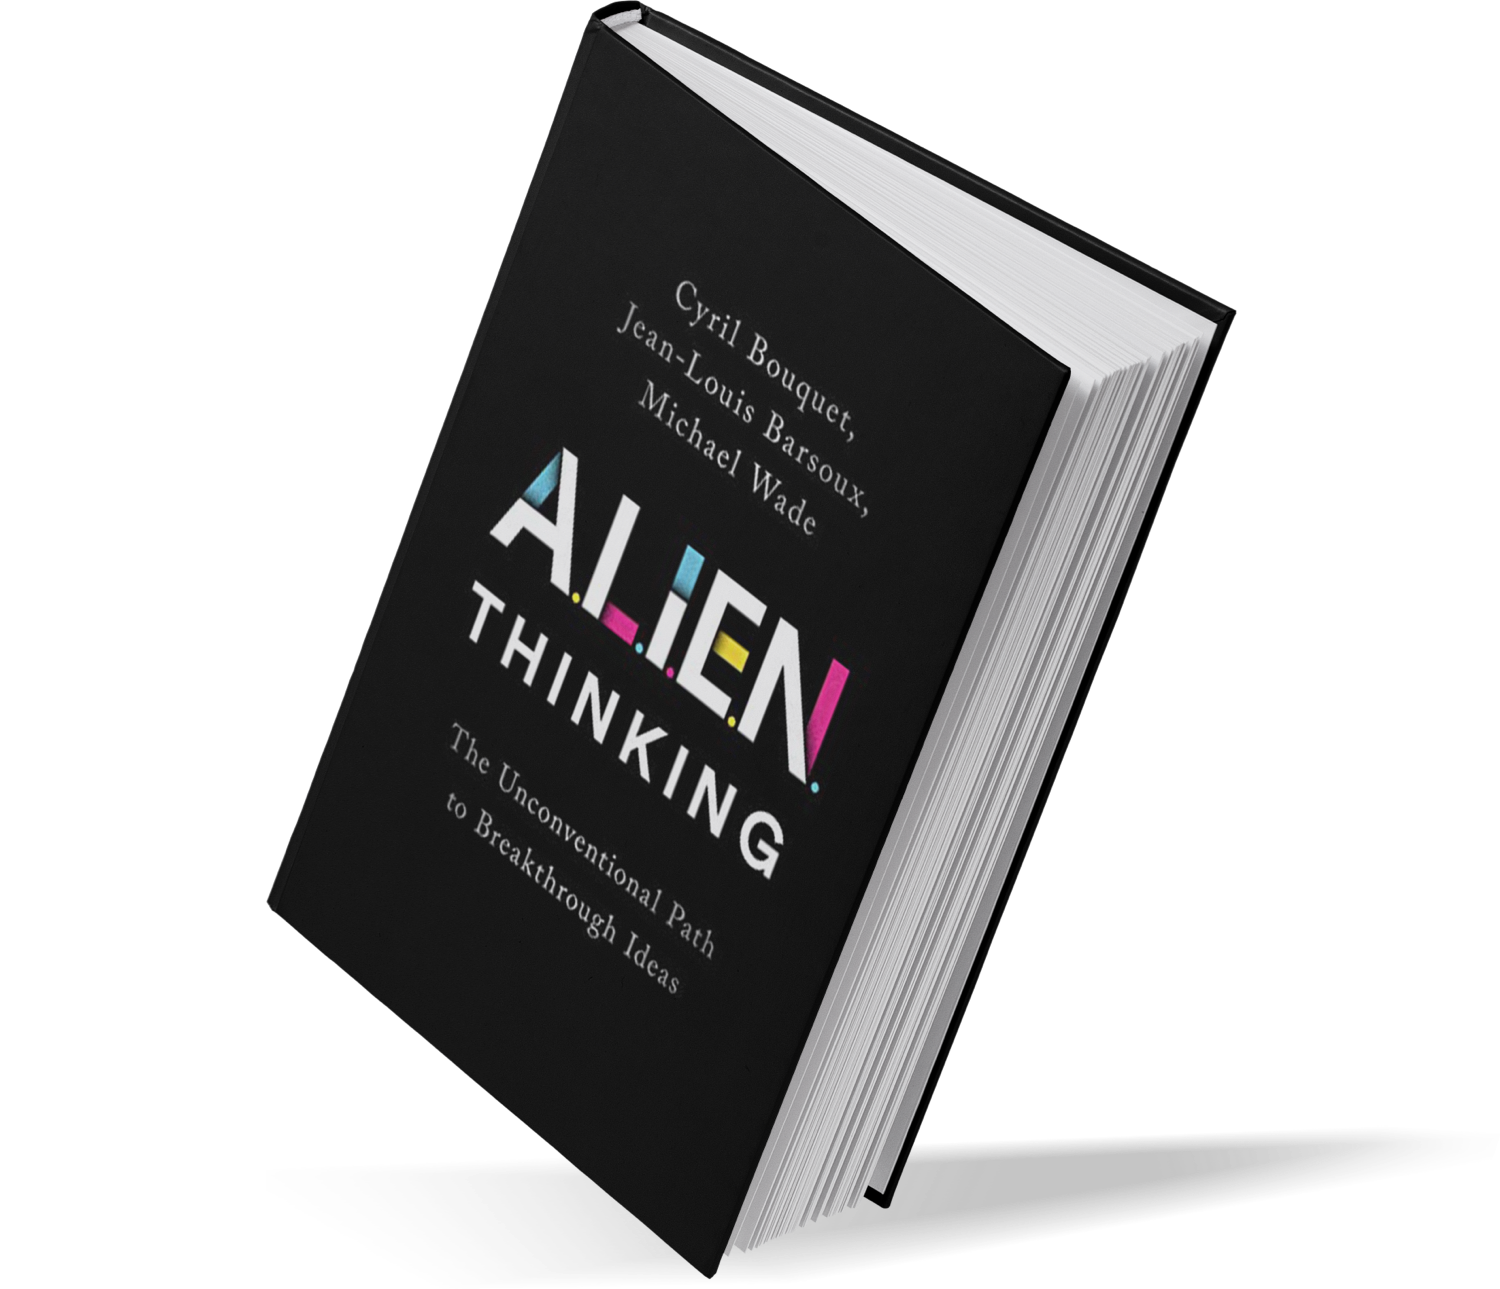 ALIEN Thinking: The Unconventional Path to Breakthrough Ideas